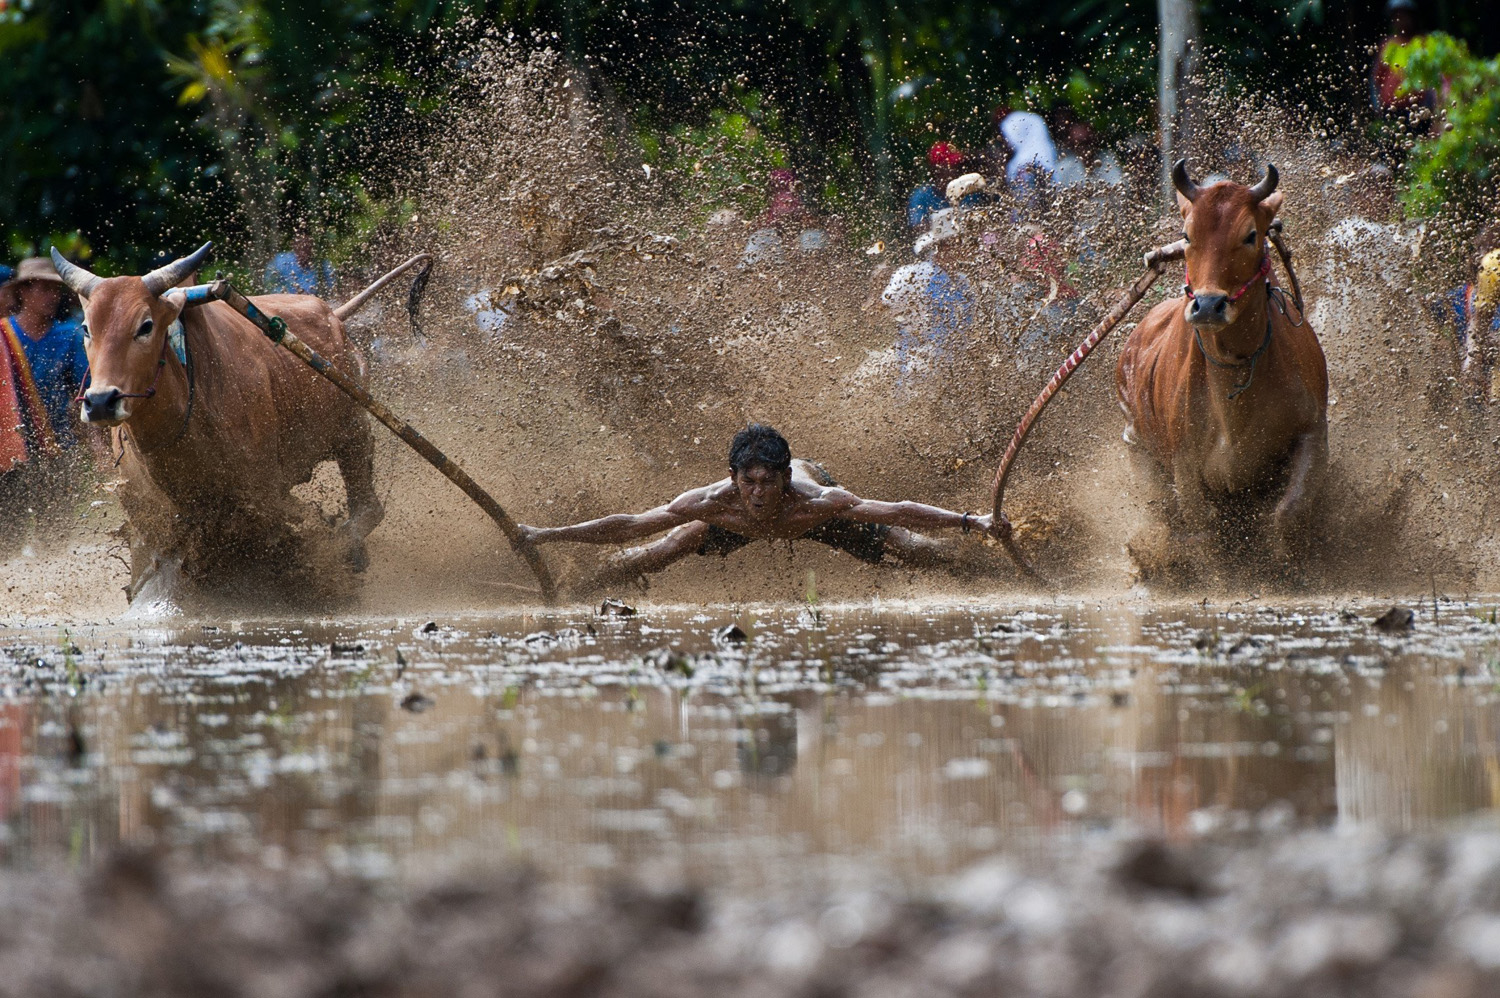 A man partakes in a traditional game, Pacu Jawi, in a field in Rambatan, Indonesia on June 14, 2014.